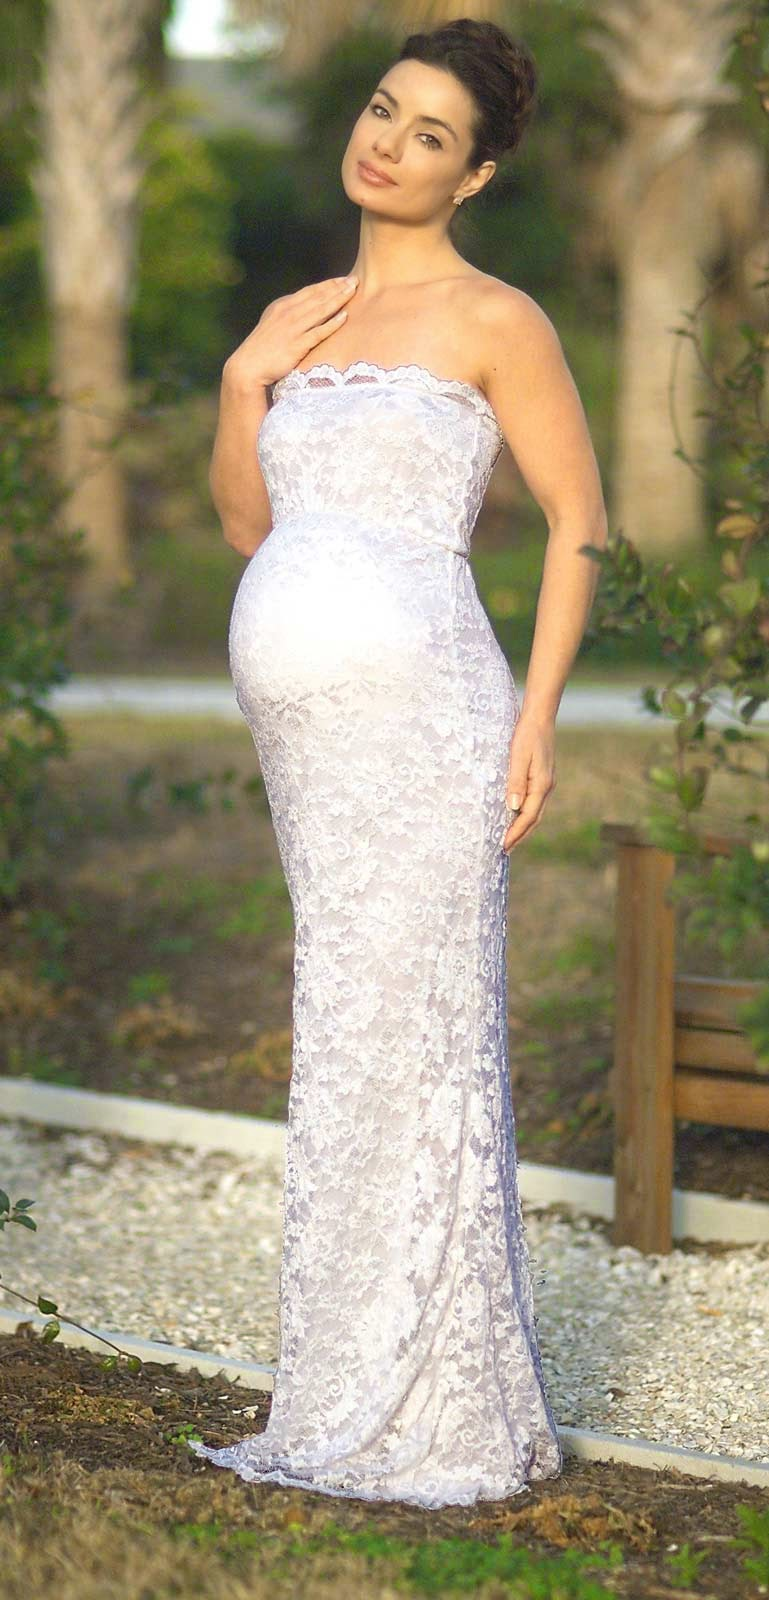 White Lace Maternity Wedding Dresses Photos HD Design Ideas